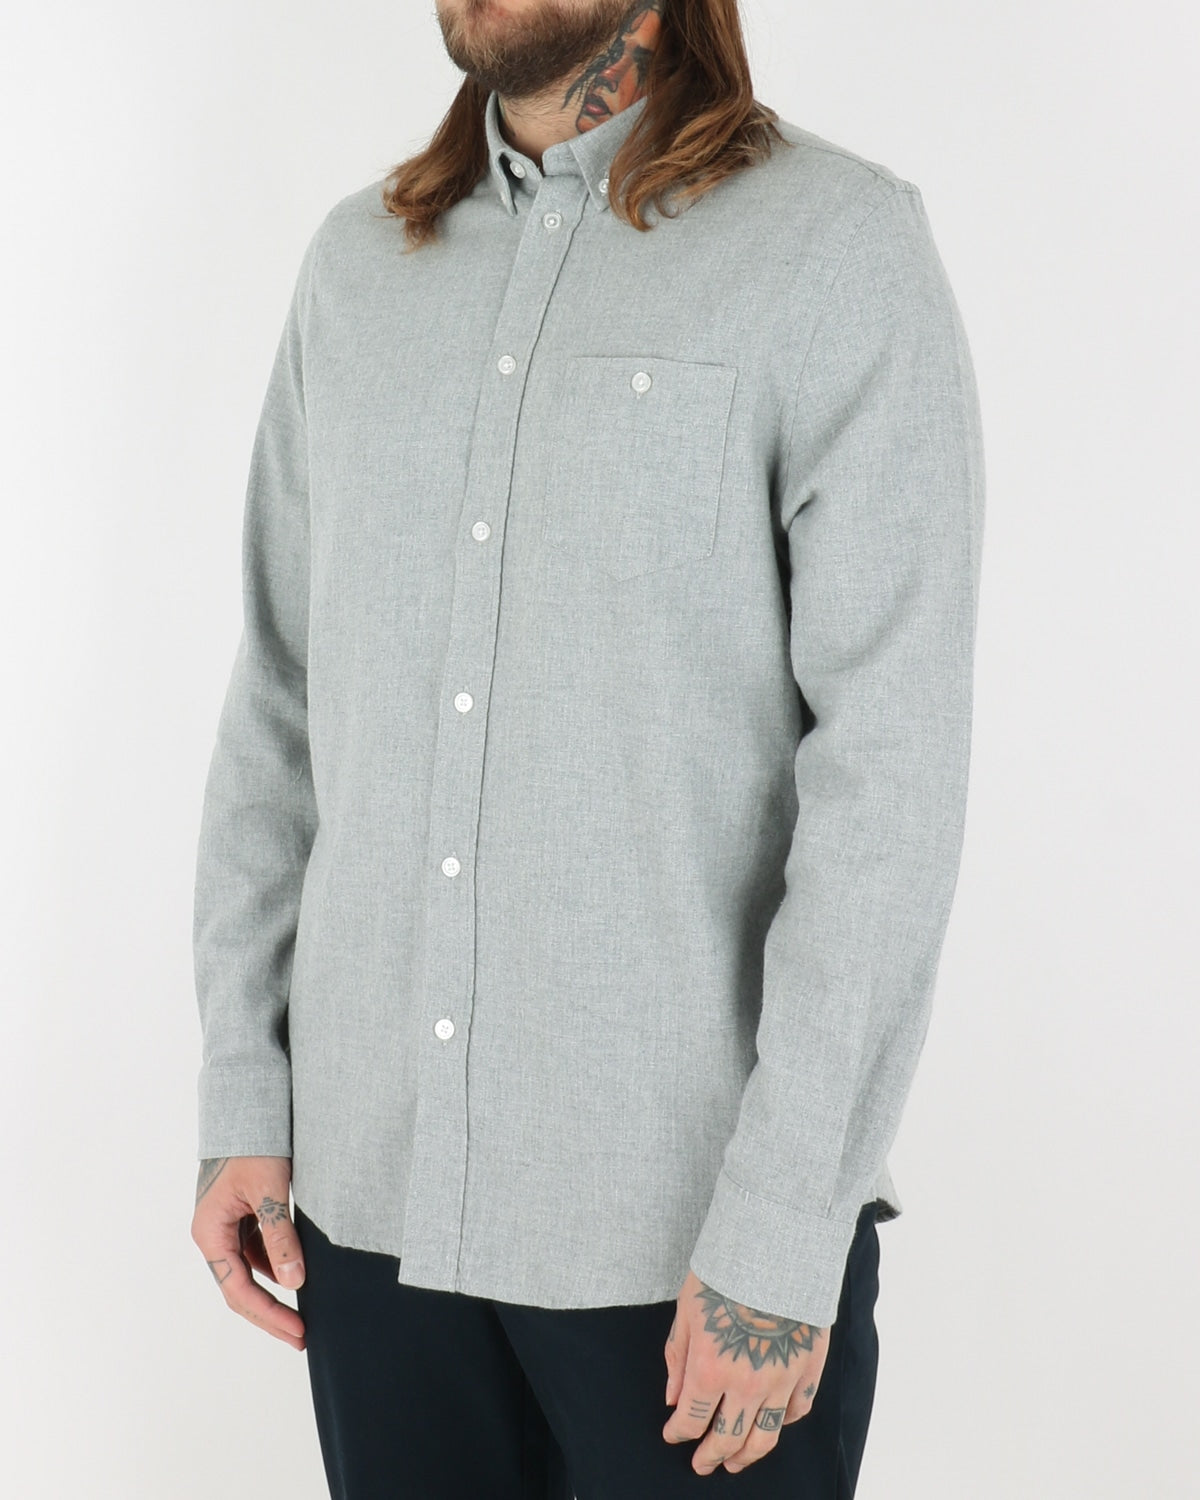 we are copenhagen_davy shirt ls_light grey melange_view_2_3